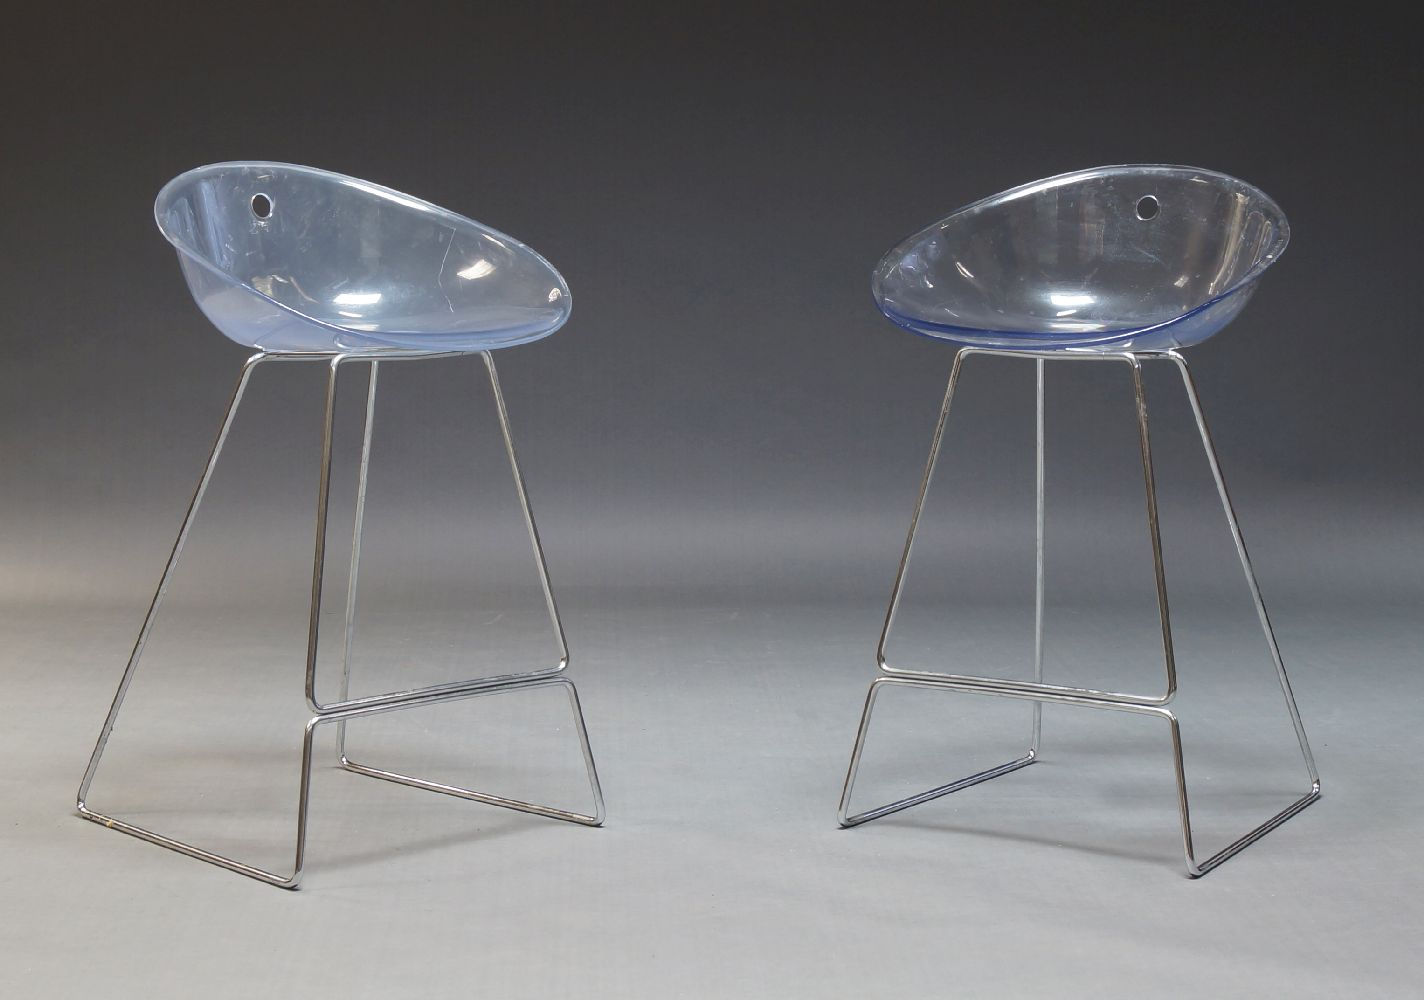 Pedrali, a pair of 'Gliss 902' bar stools, c.2000, with clear polycarbonate seats, on chromed